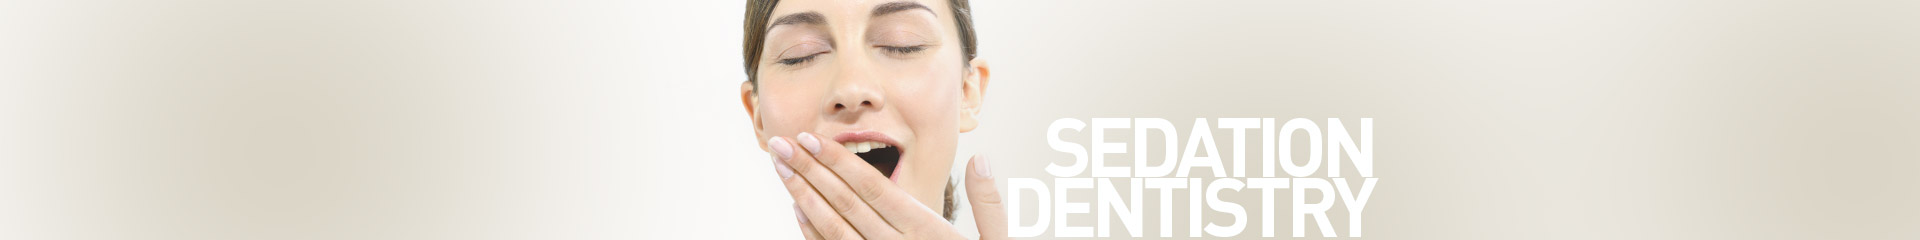 SEDATION DENTISTRY SPECIALISTS IN BURLINGTON